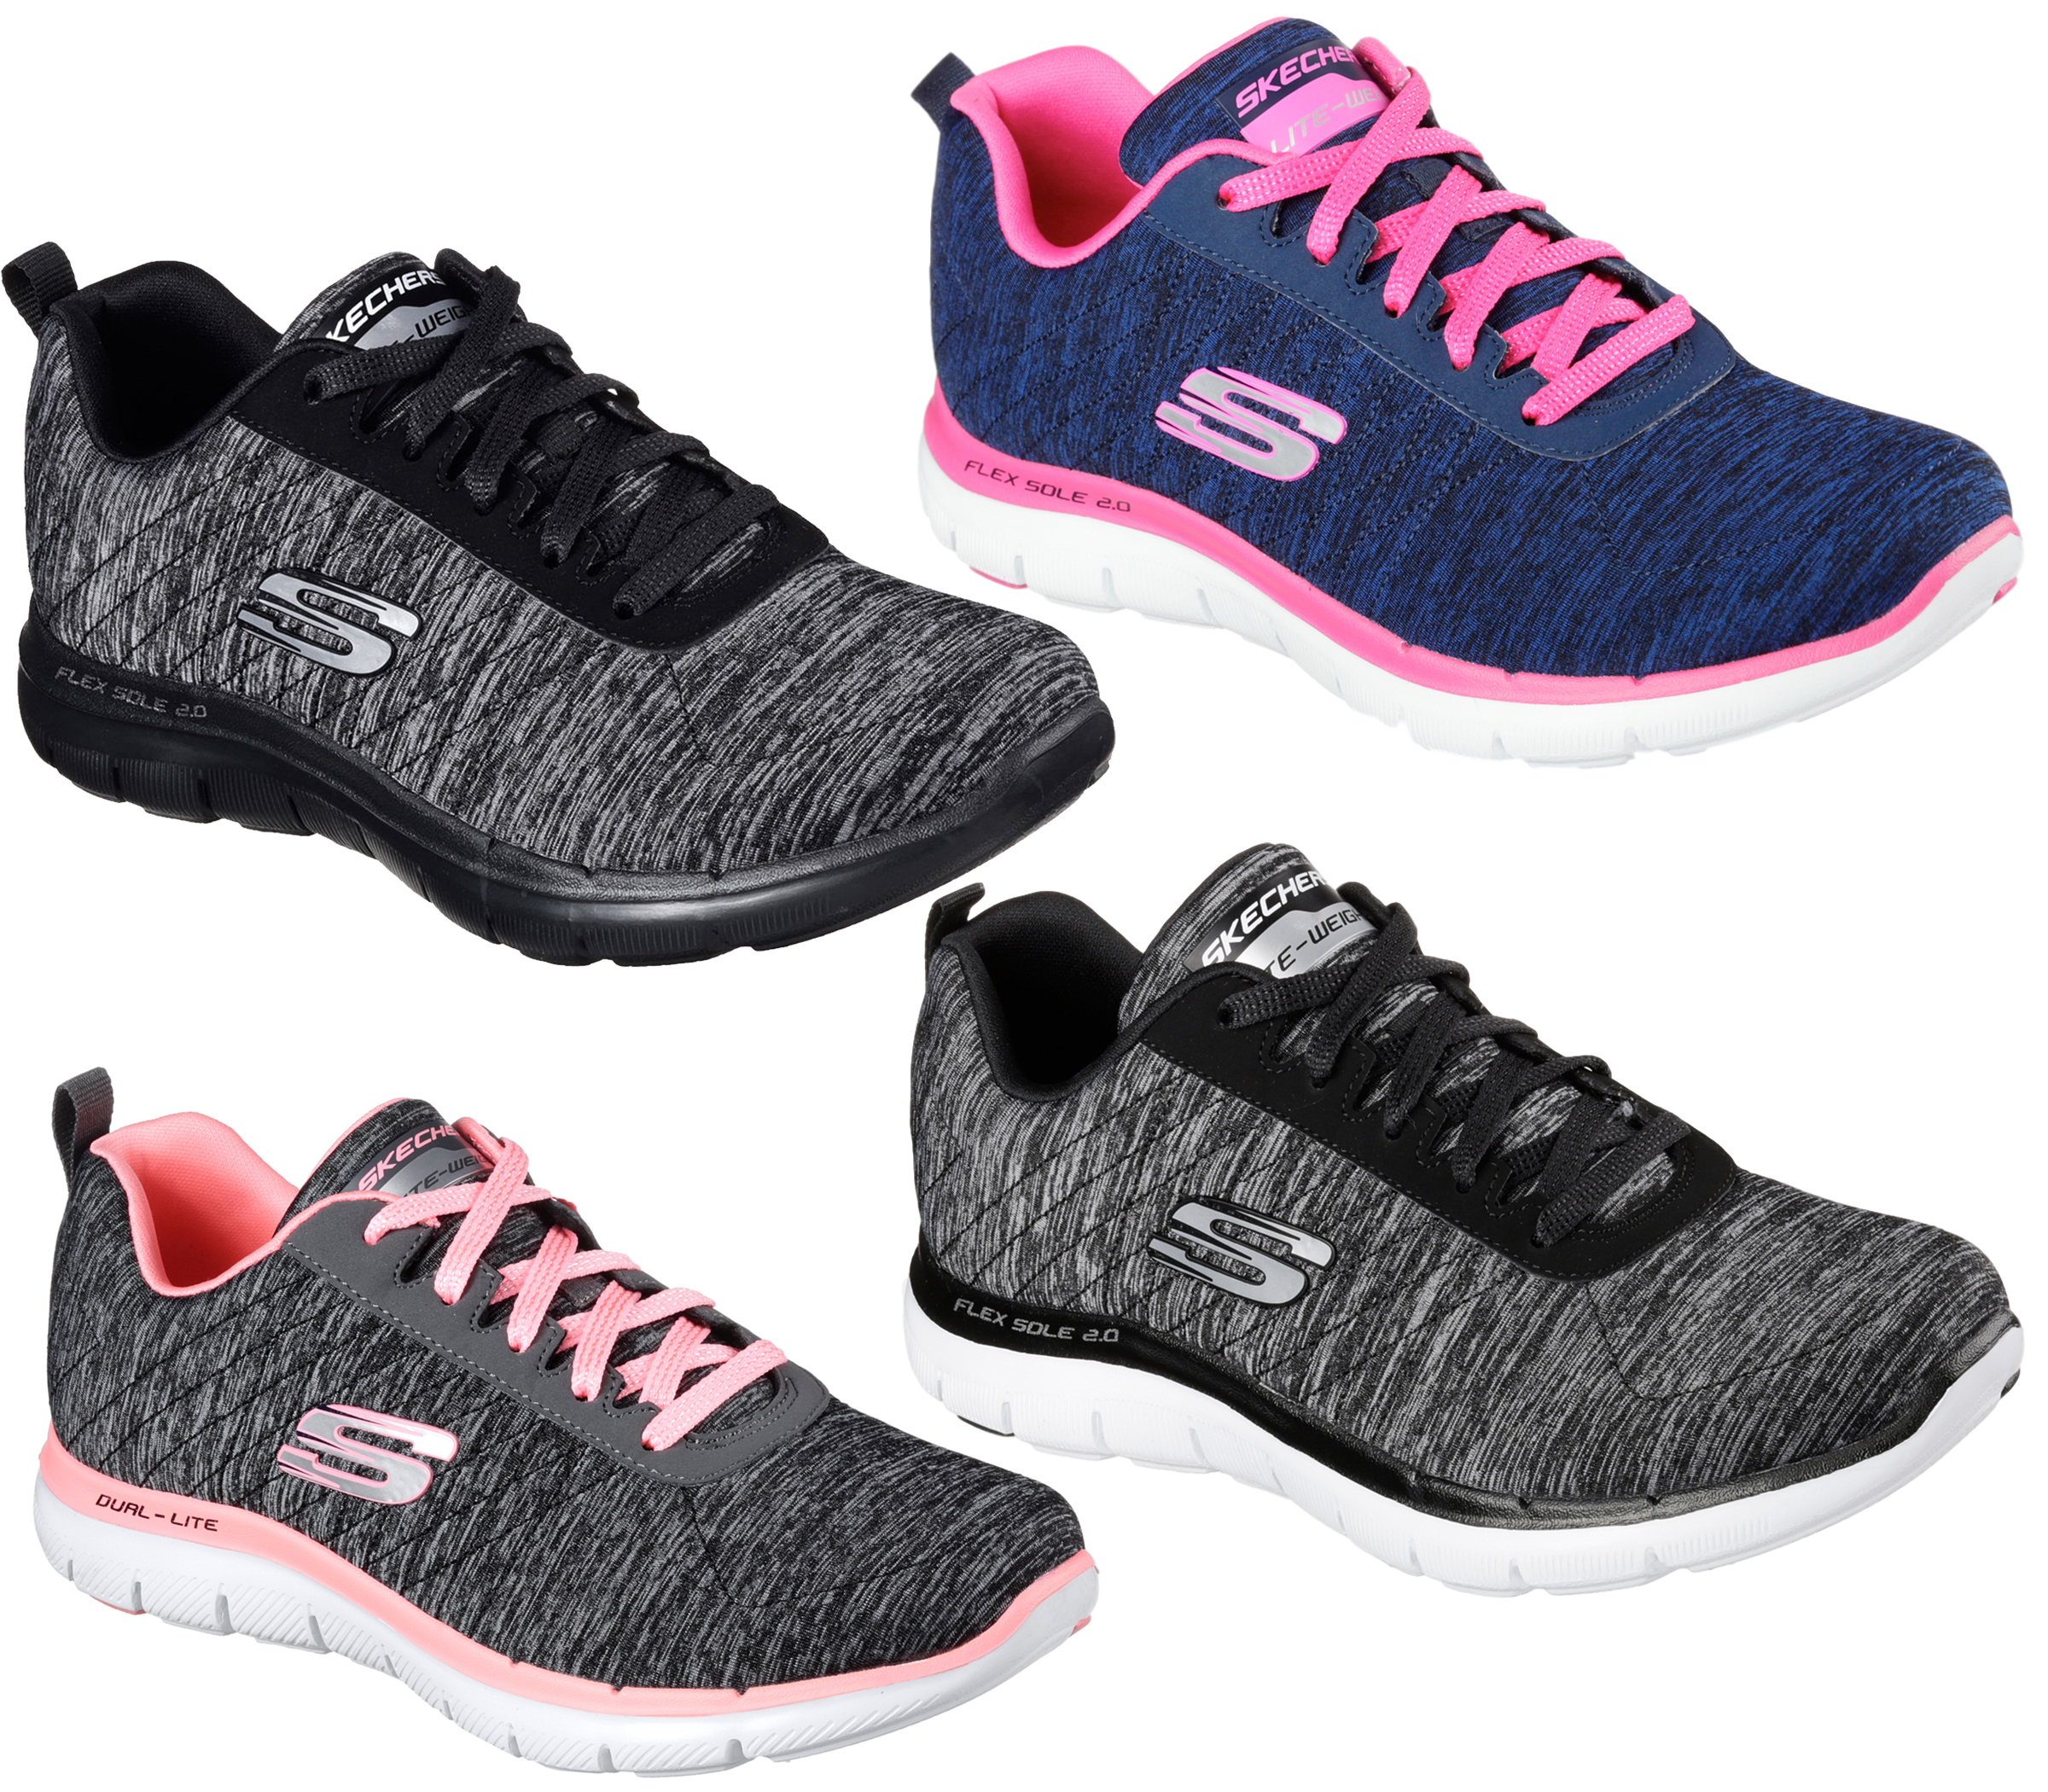 3262ea9bfc0da Womens Skechers Flex Appeal 2.0 Memory Foam Lace Up Sports Trainers Sizes 4  to 8